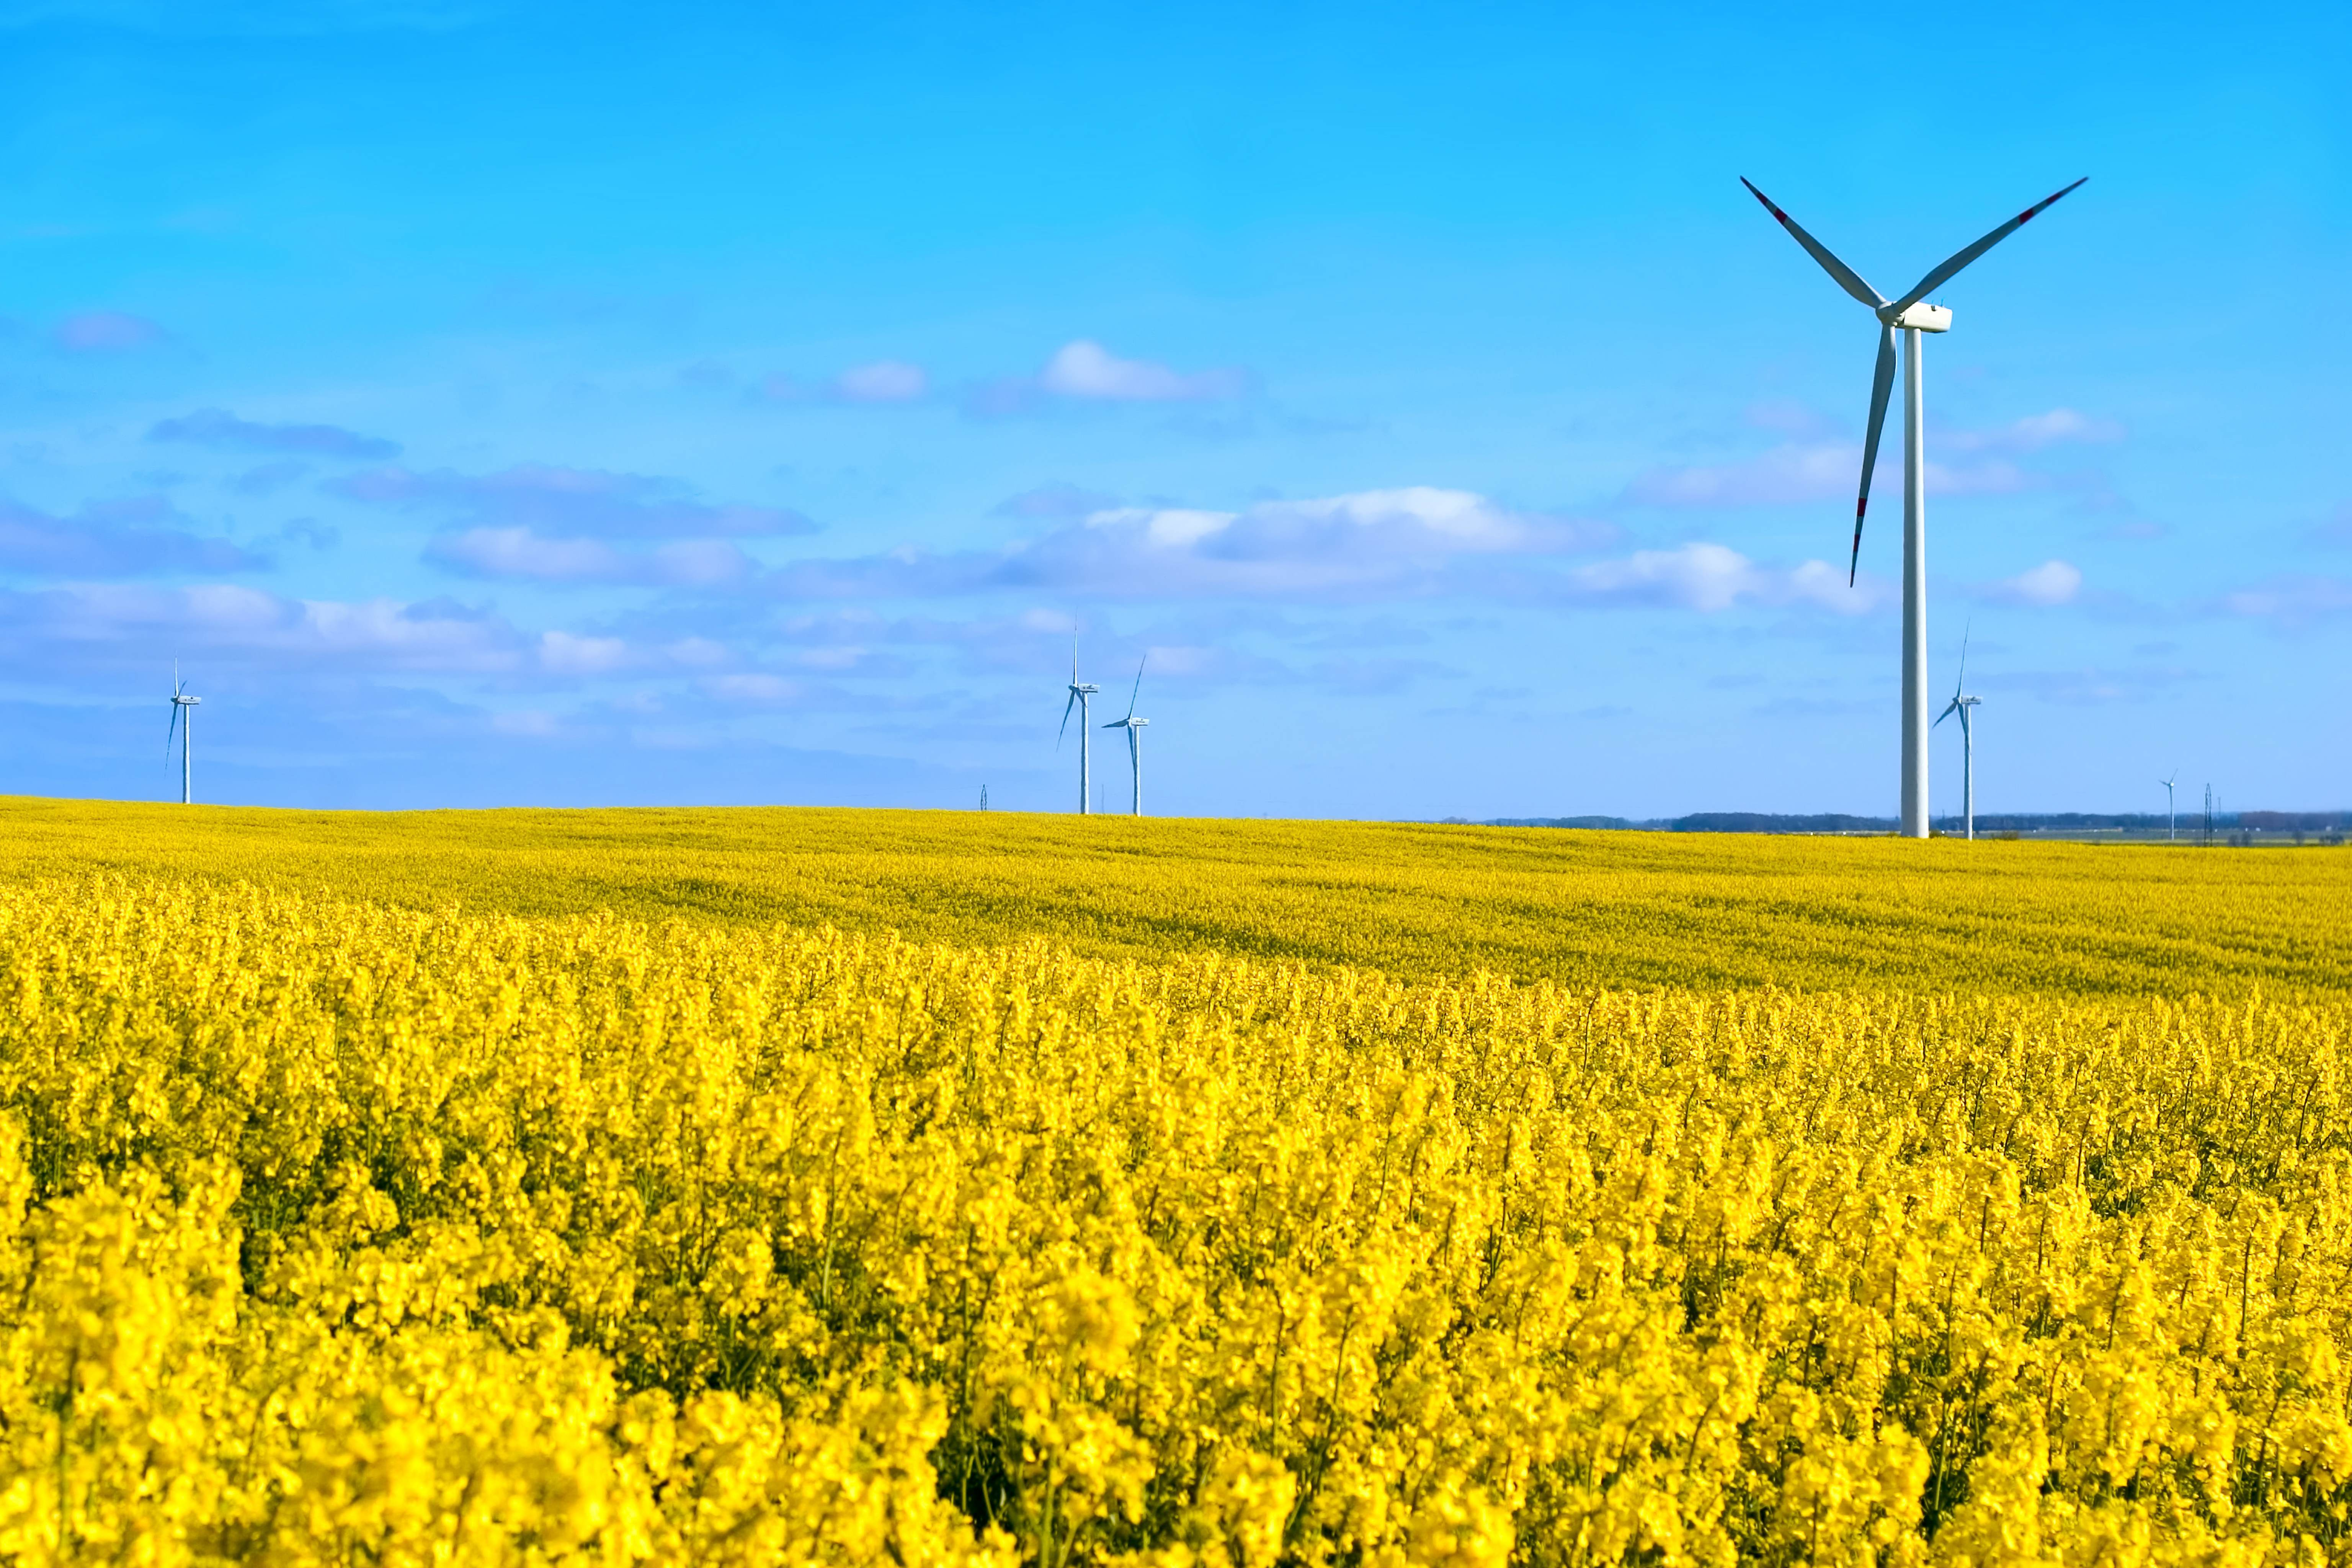 Wind turbines in field of rapeseed